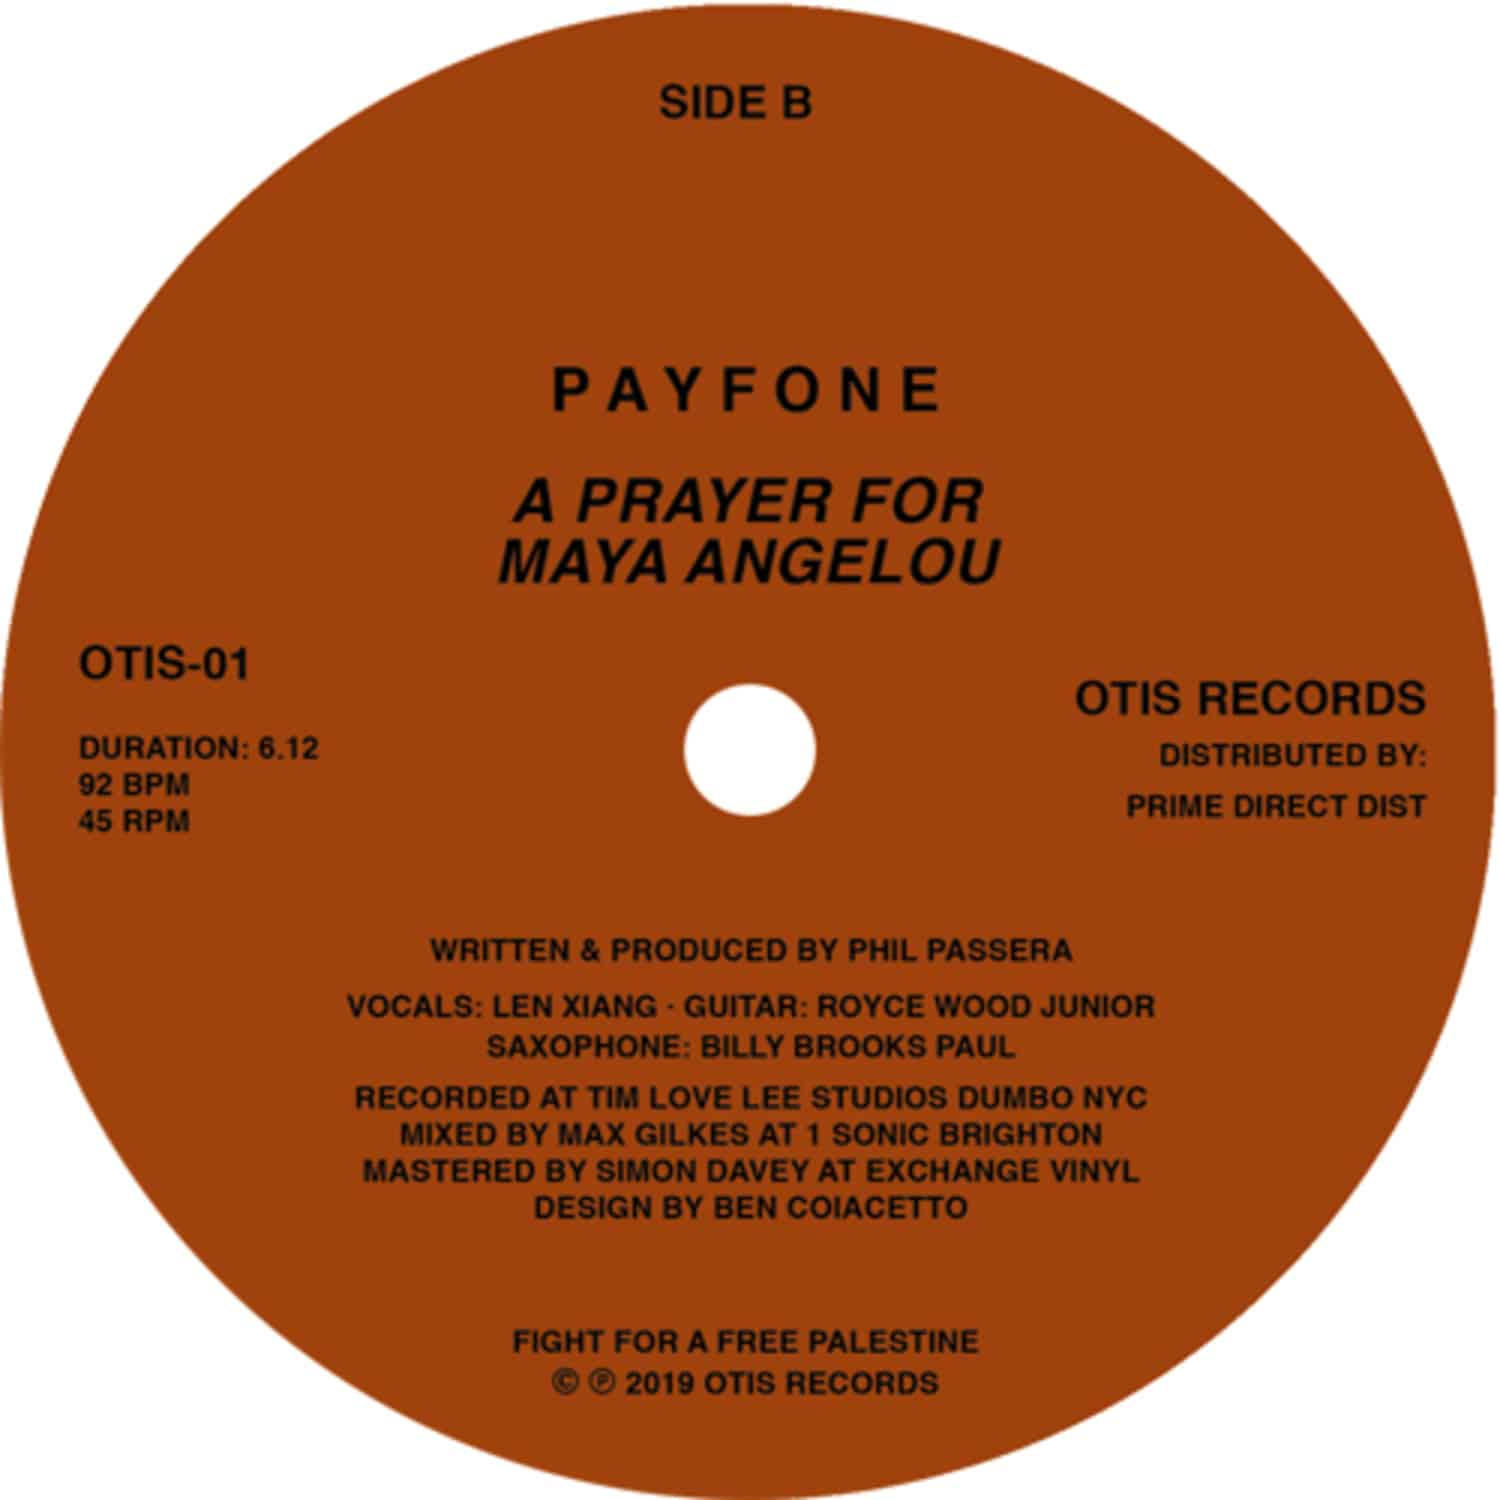 Payfone - I WAS IN NEW YORK / A PRAYER FOR MAYA ANGELOU